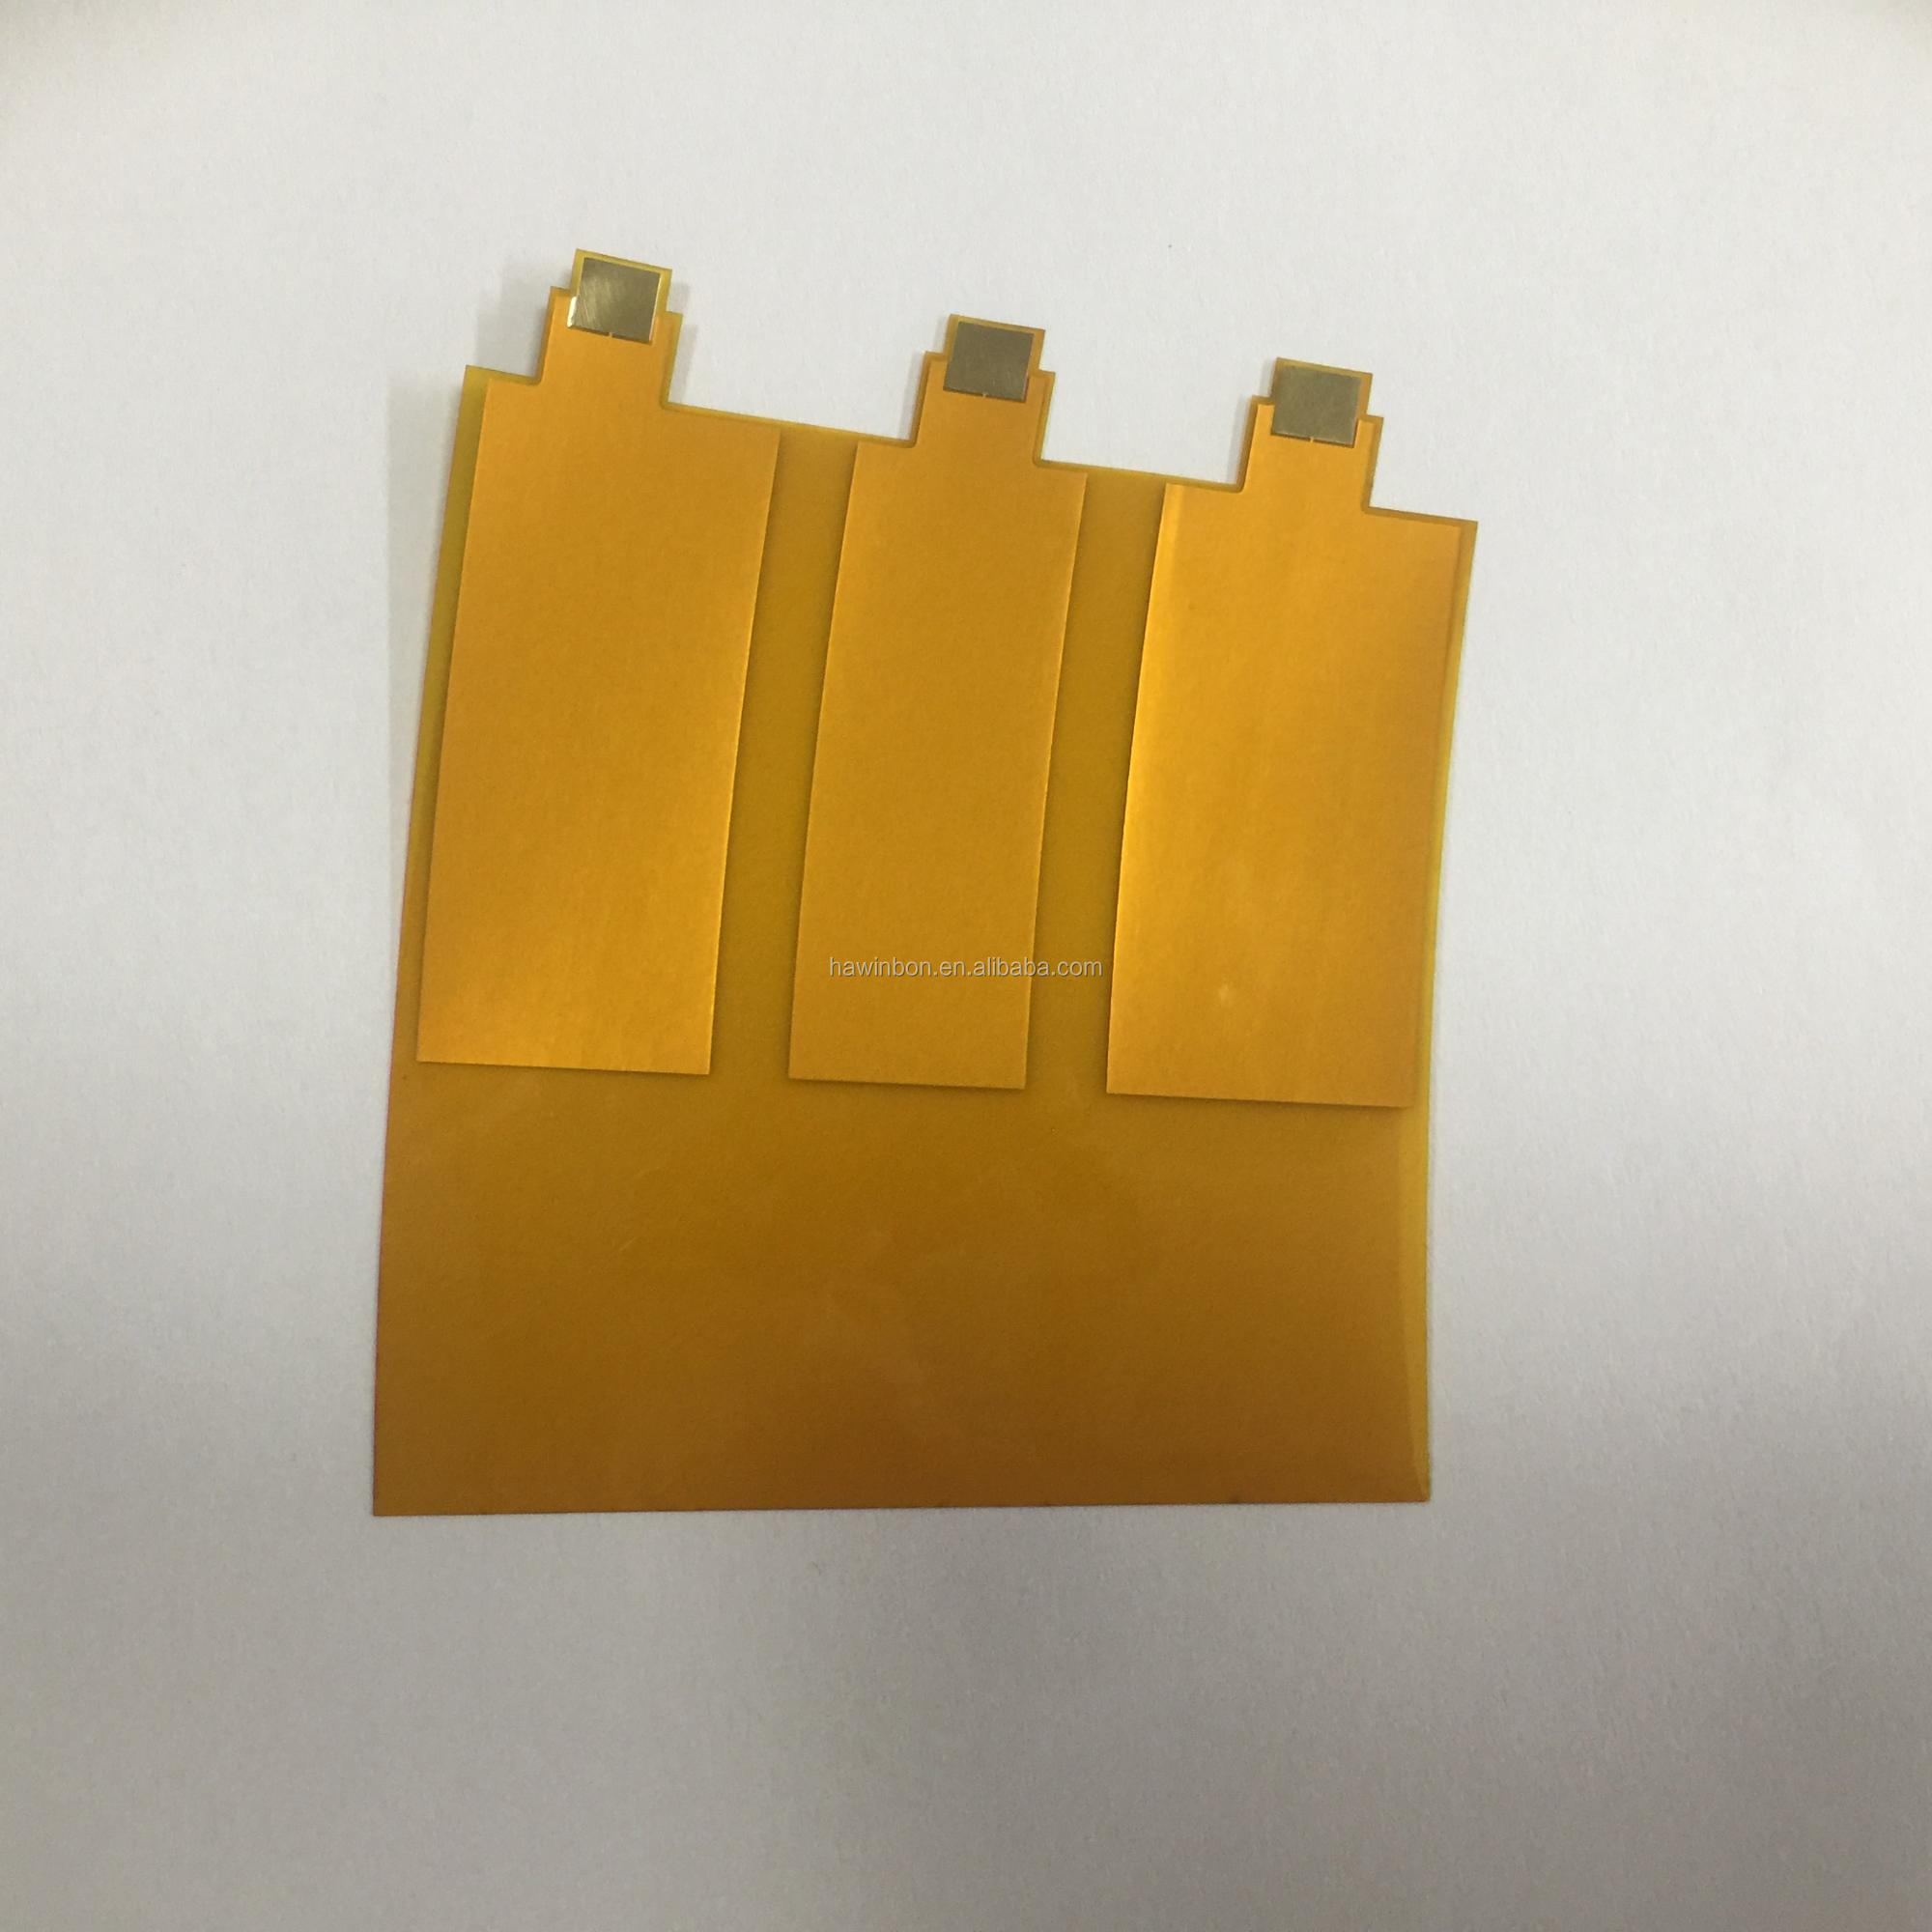 China Fpc Pcb Manufacturers And Suppliers On Board Assemblyled Circuit Maker Buy Flex Print